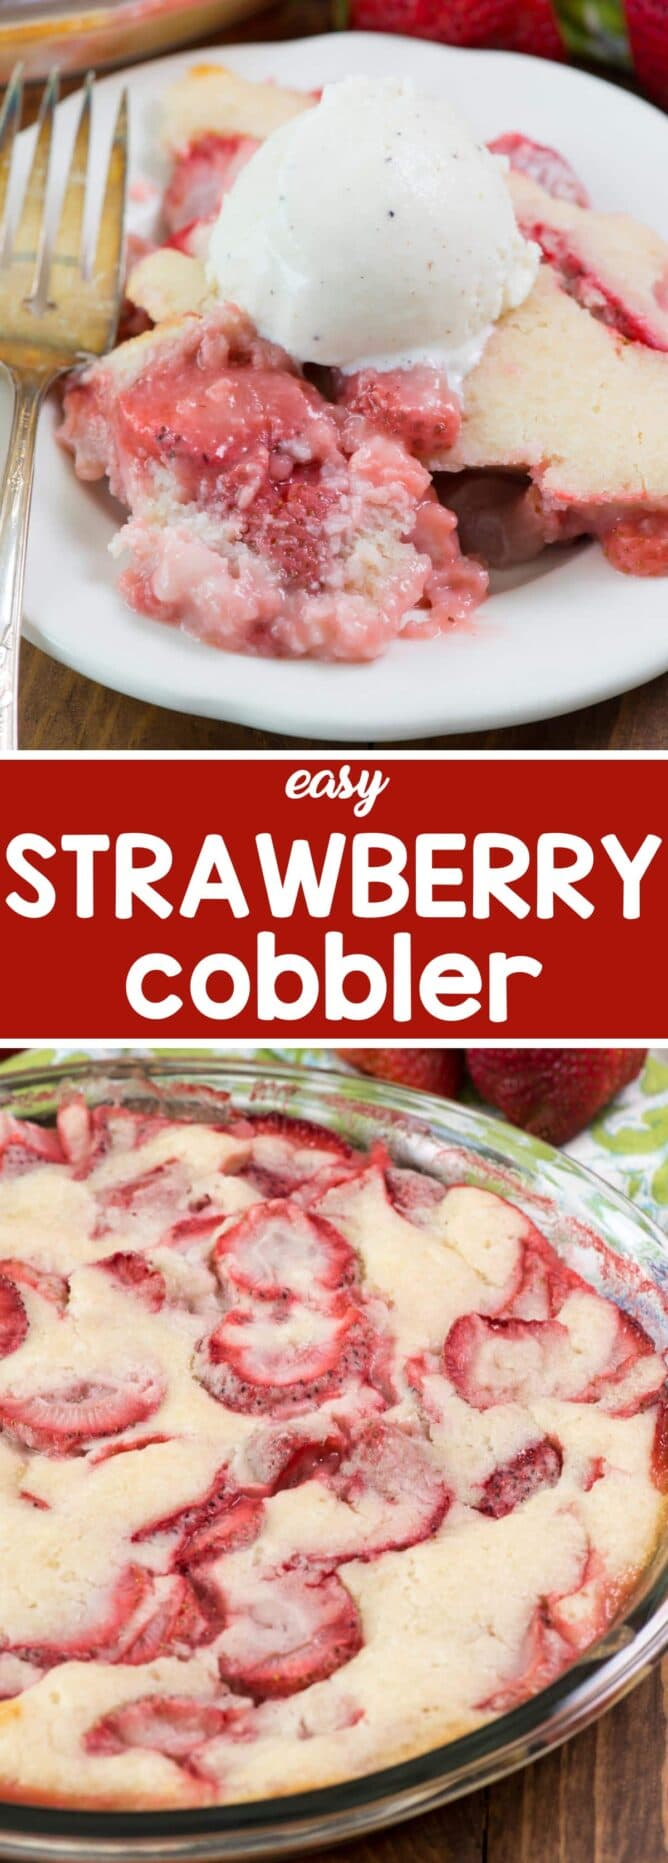 Easy Strawberry Cobbler collage photo of dessert on plate with ice cream and dessert in pan